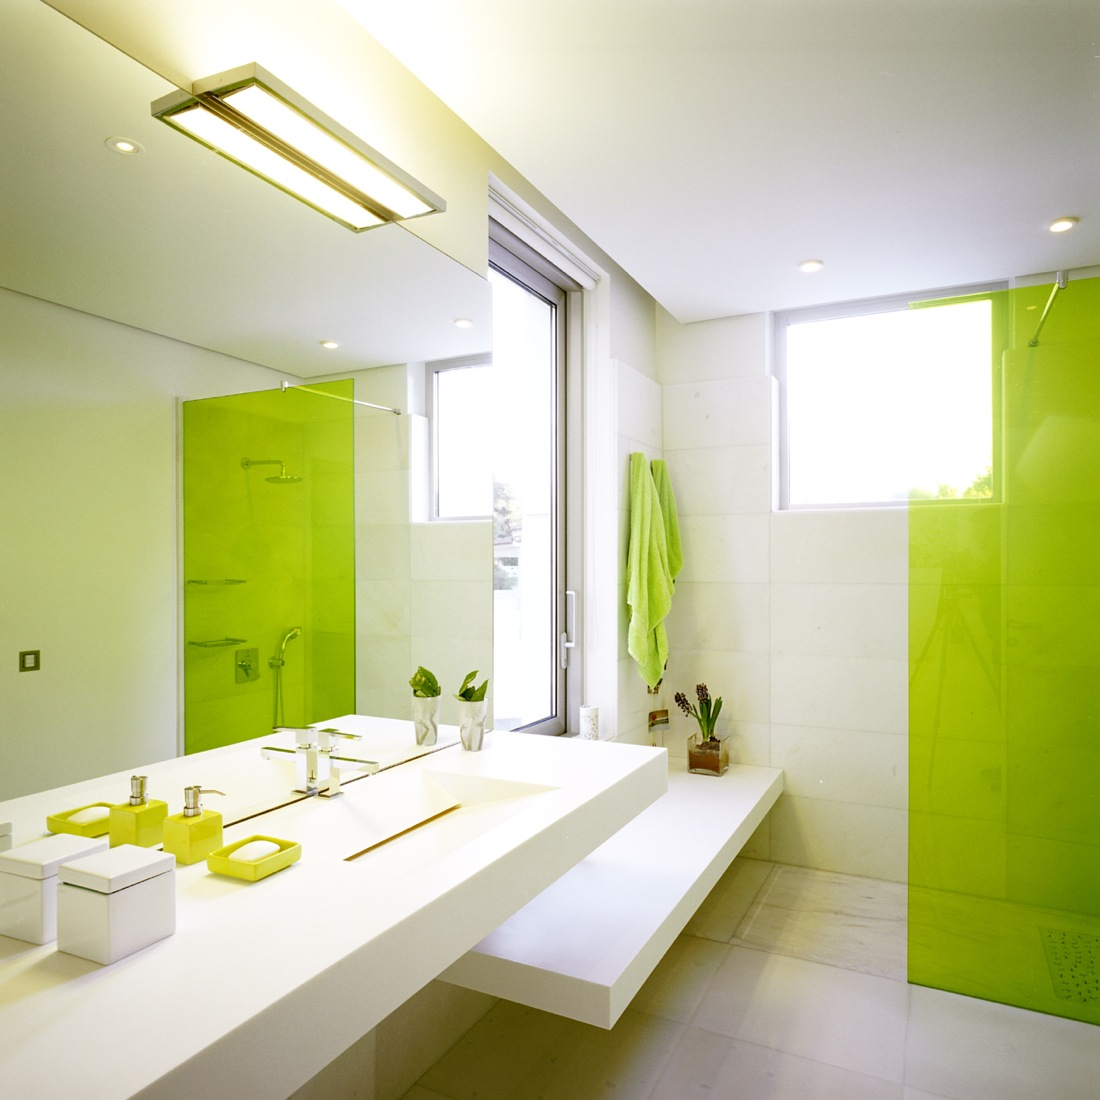 Minimalist bathroom designs home designs project for Interior design for bathroom